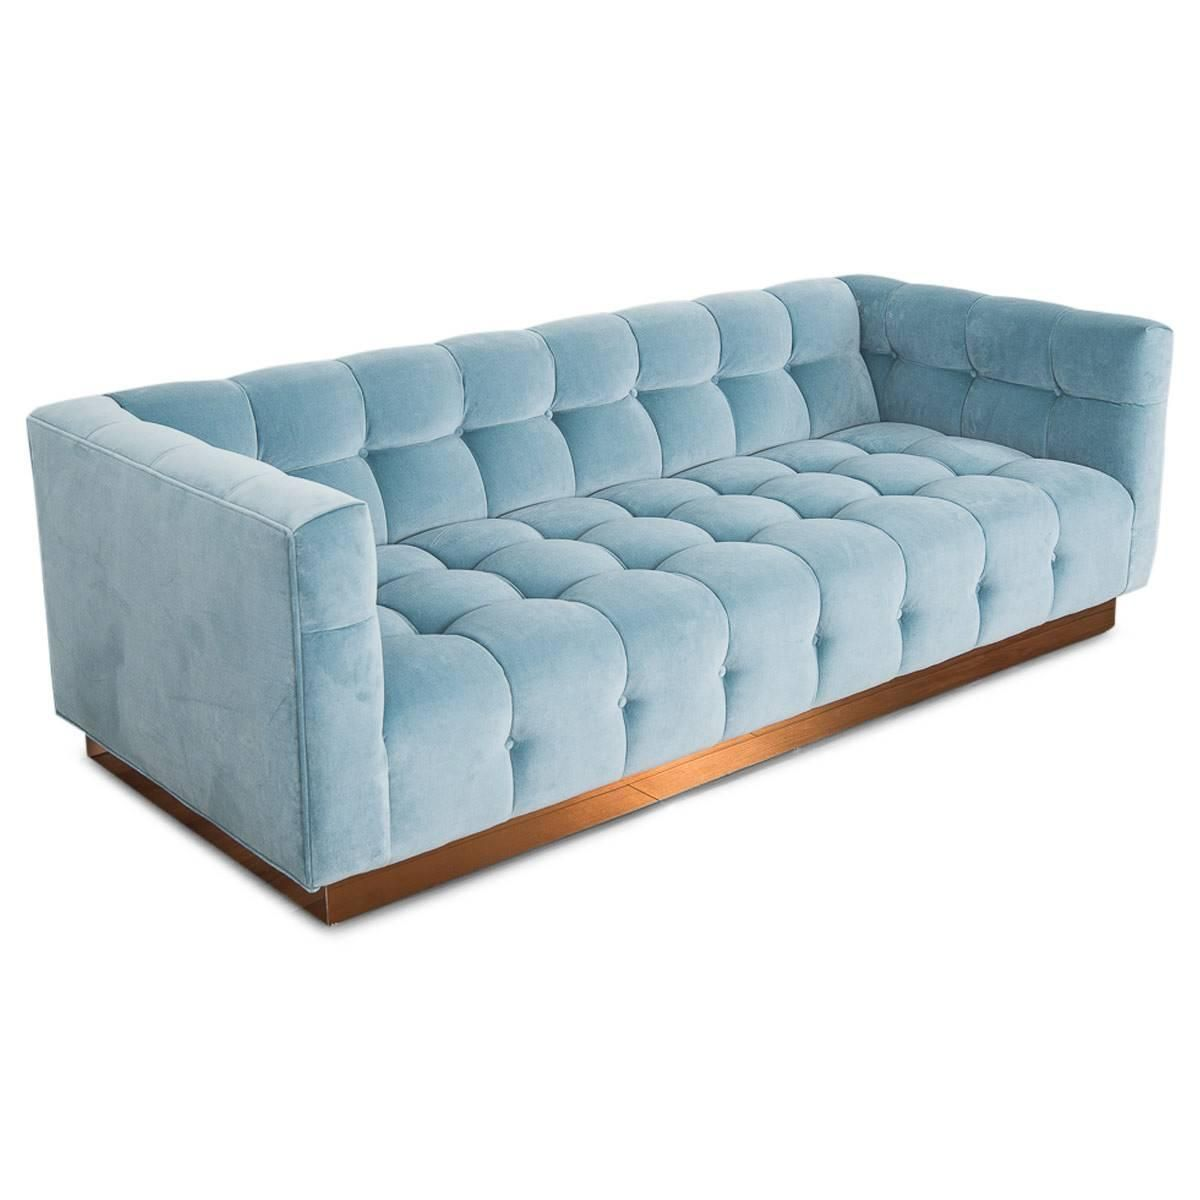 Meubles Accent Furniture Rockland Modern Style Delano Sofa Tufted In Capri Blue Velvet W Copper